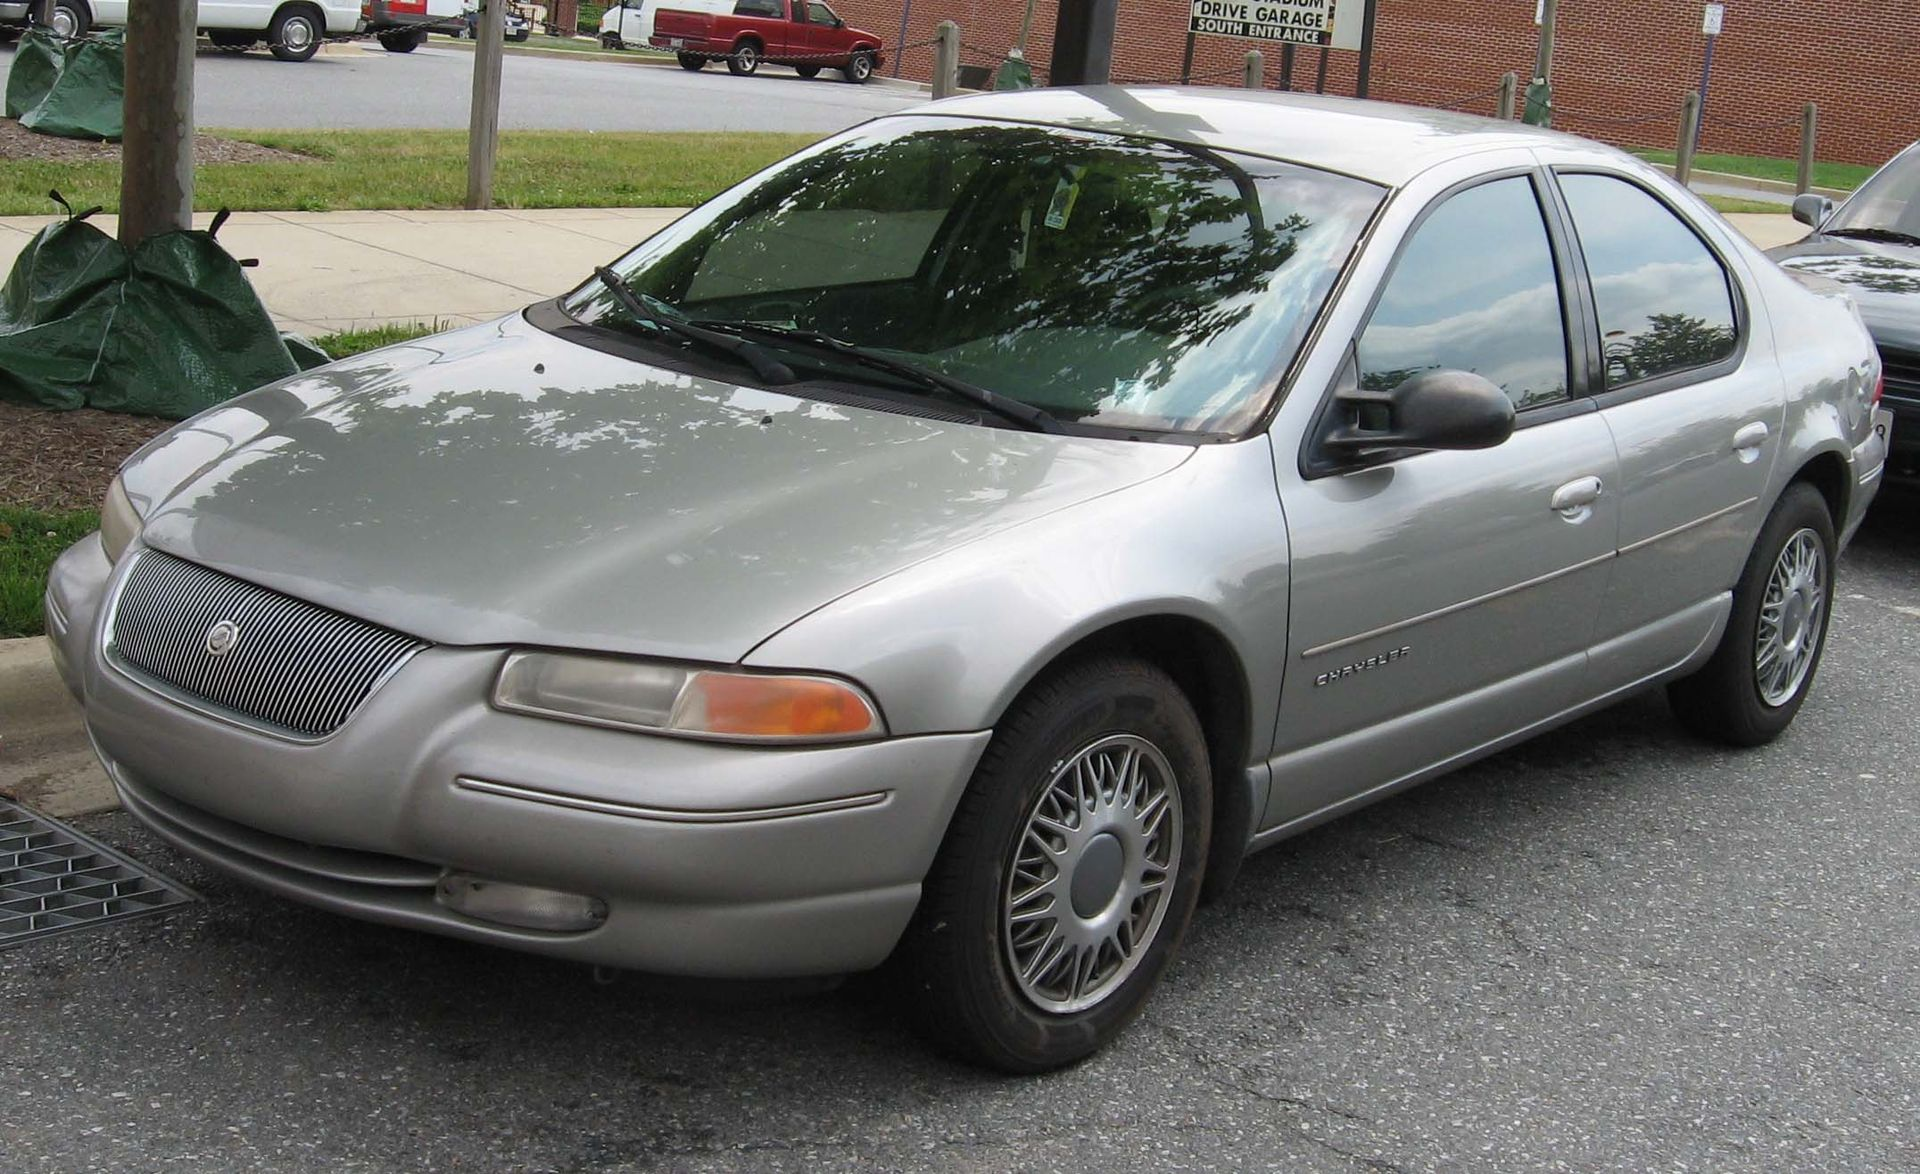 1995 Chrysler Cirrus #20